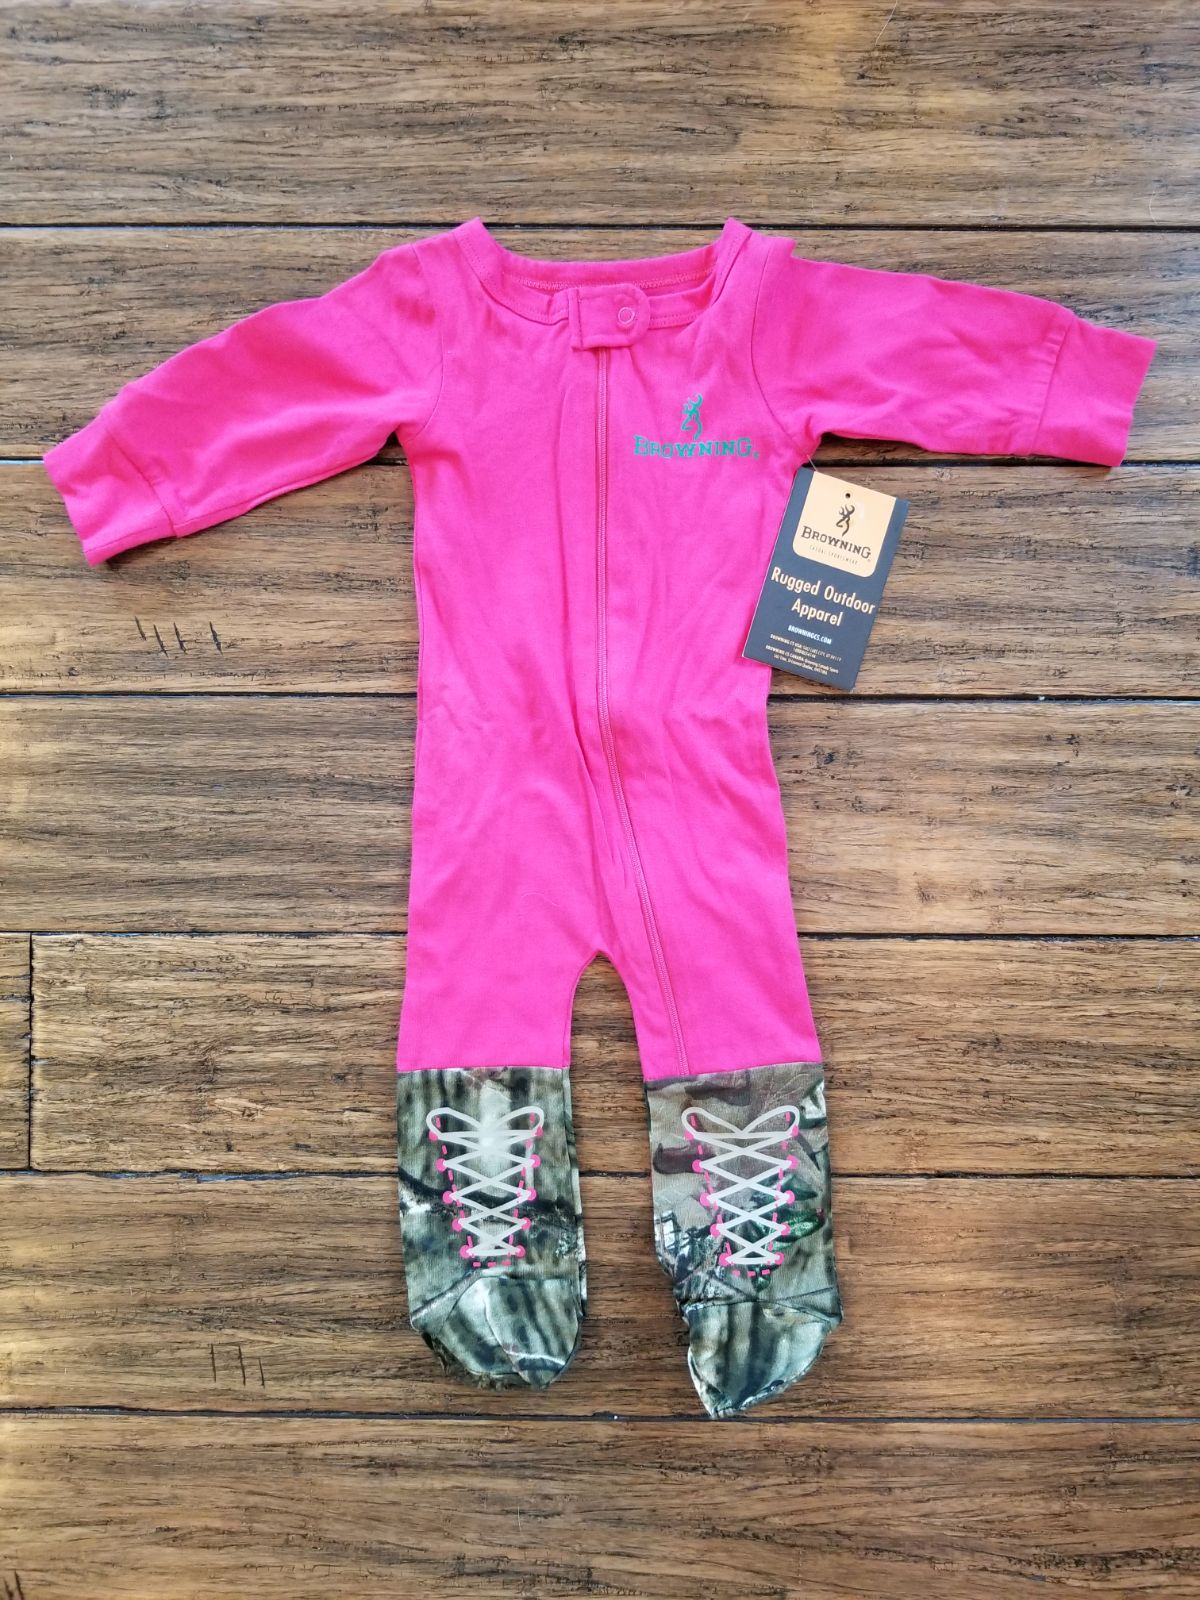 6m NWT Browning Pink and Camo Girls Foot